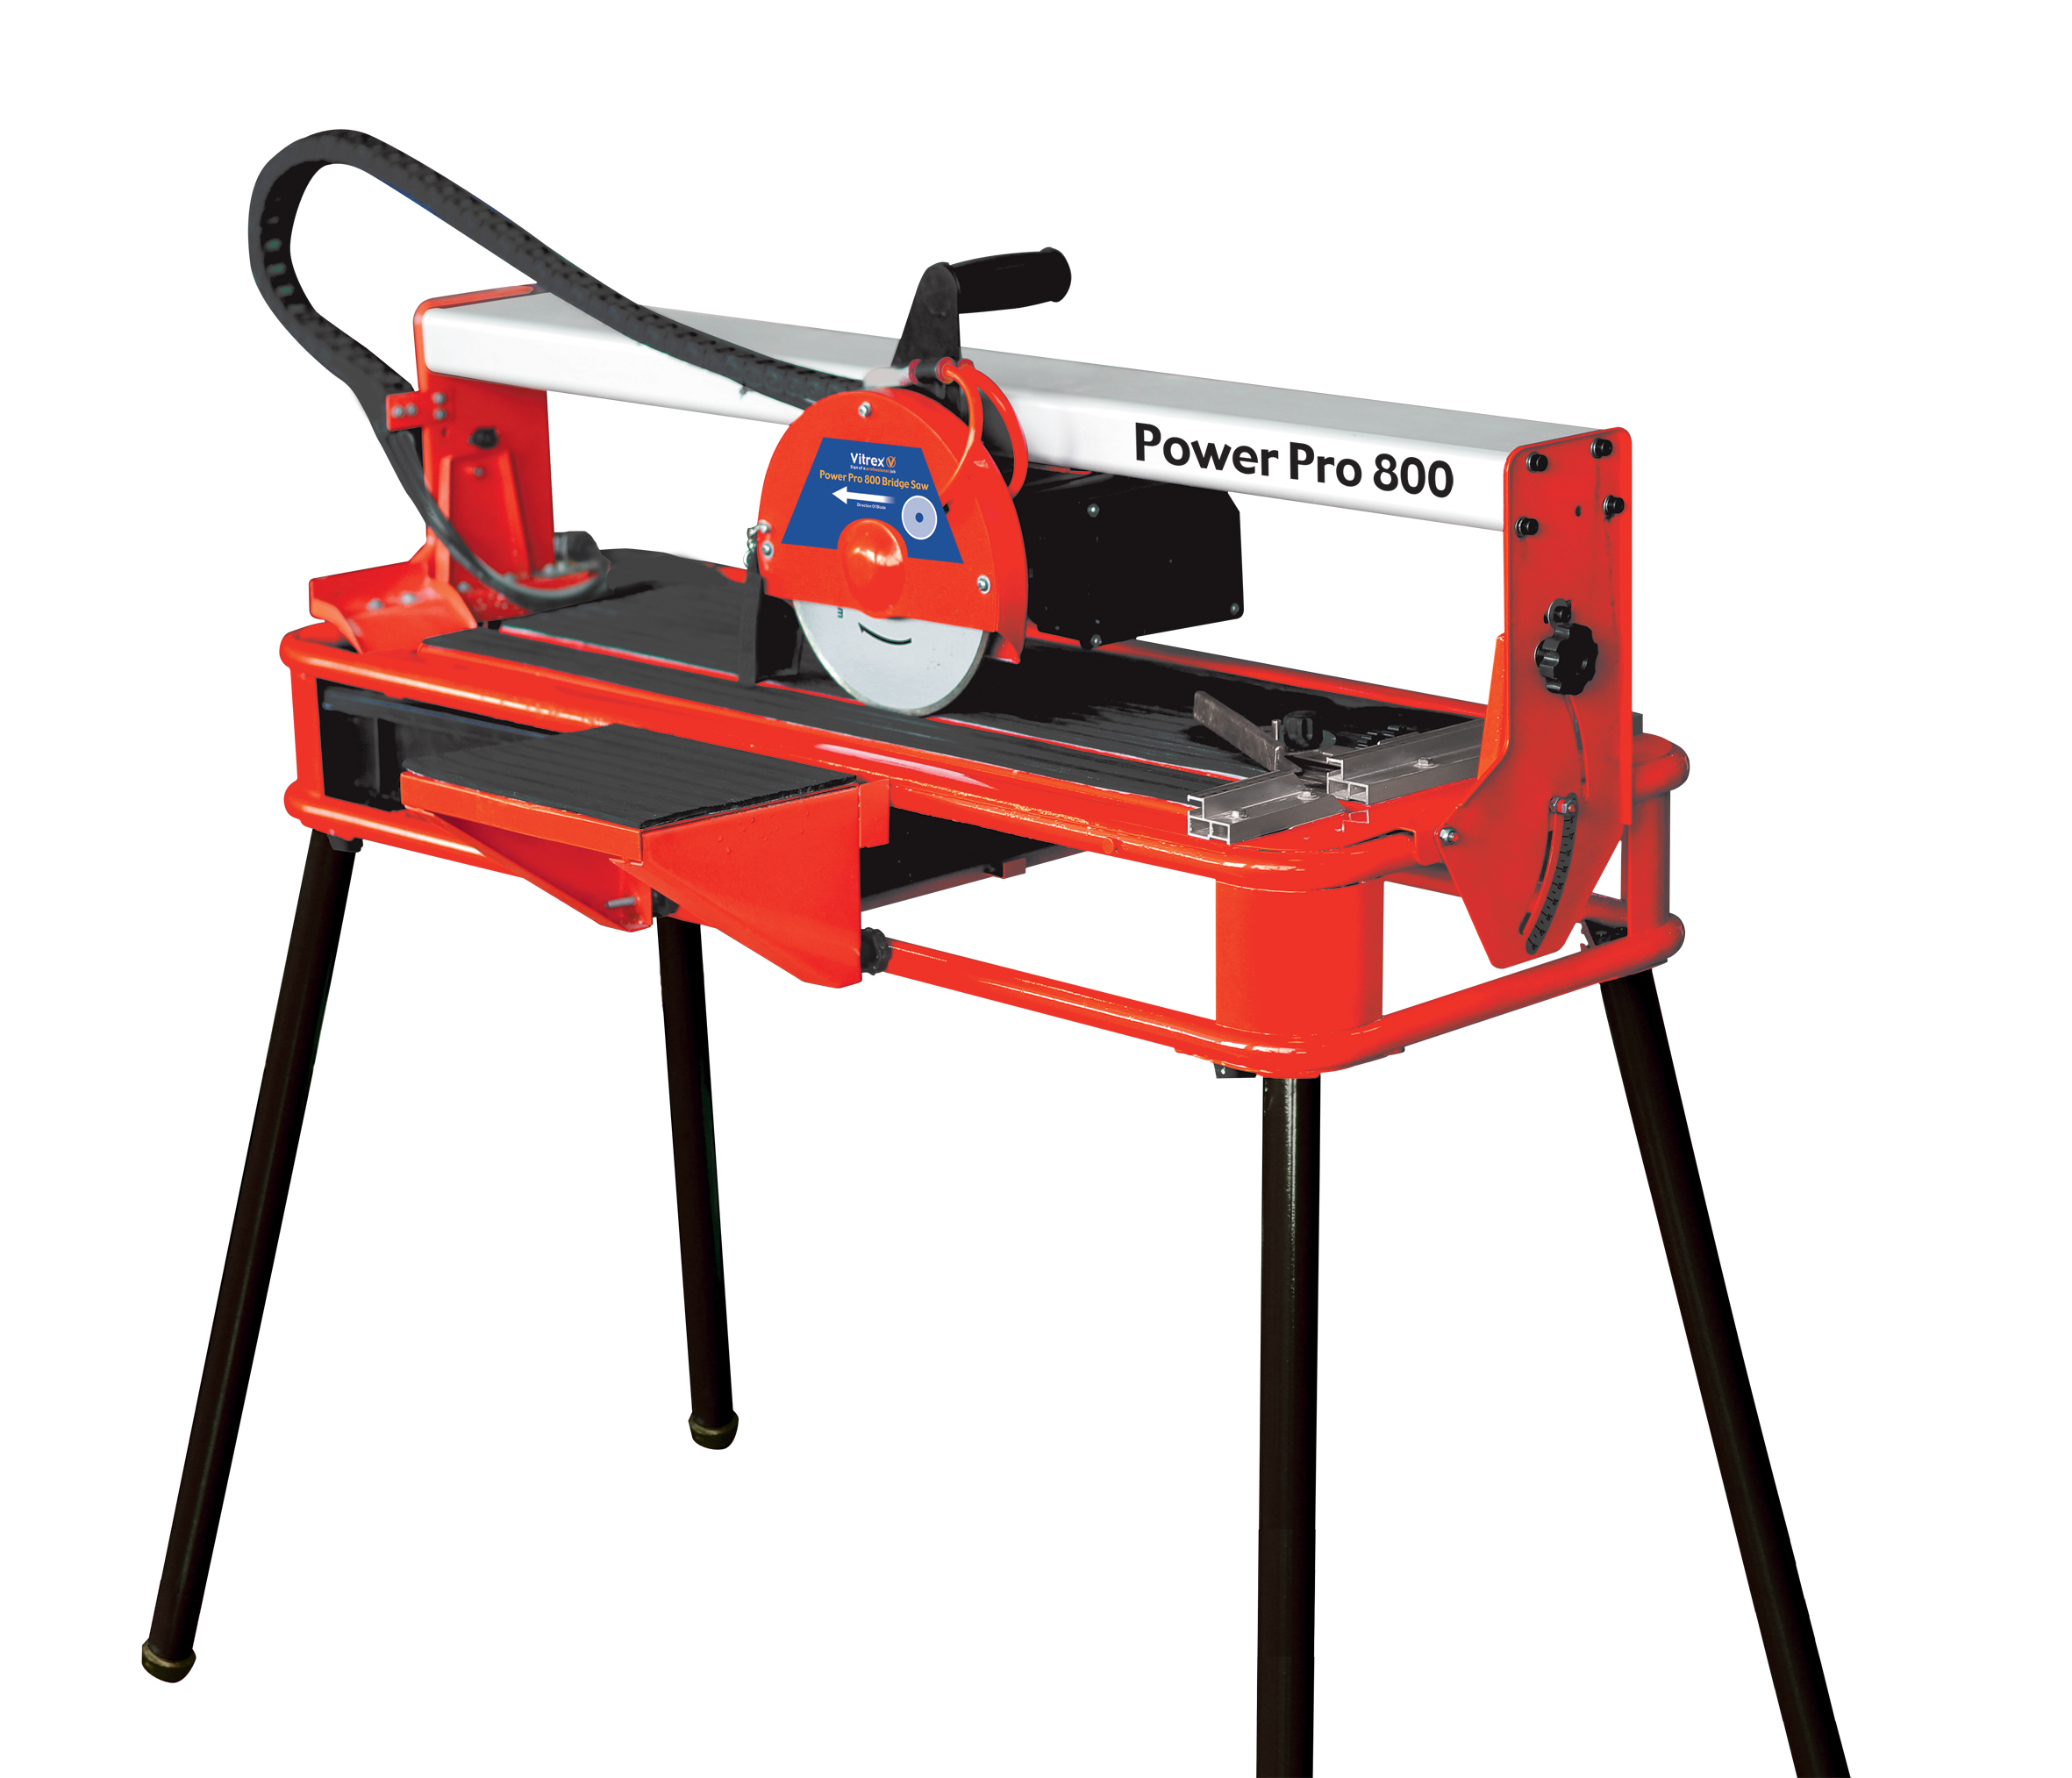 Power Pro 800 Bridge Saw